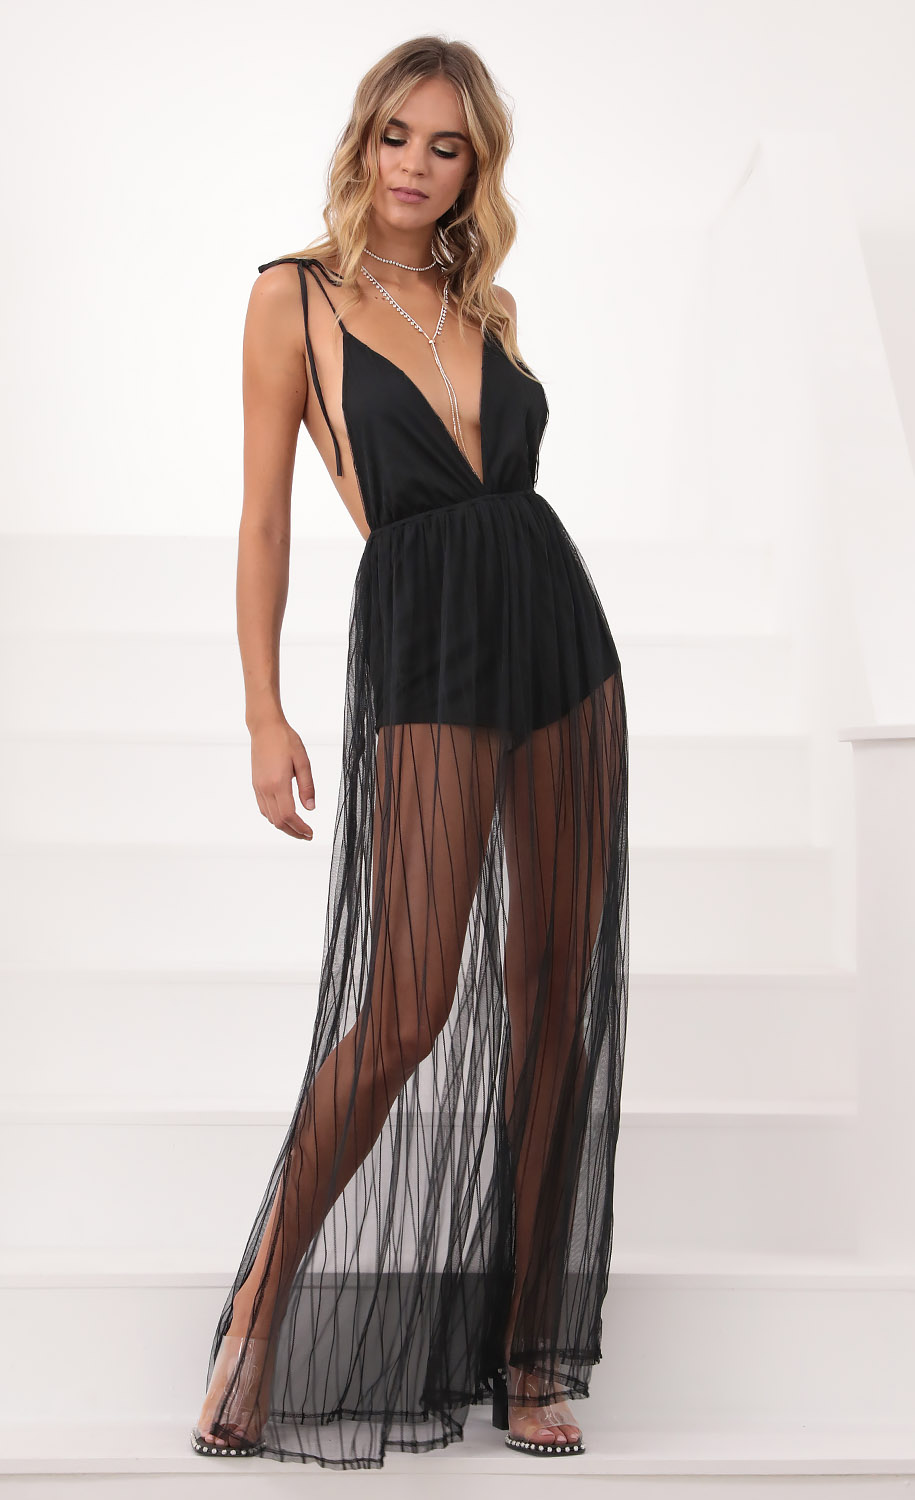 Skylar Love Ties Maxi Dress Black Mesh